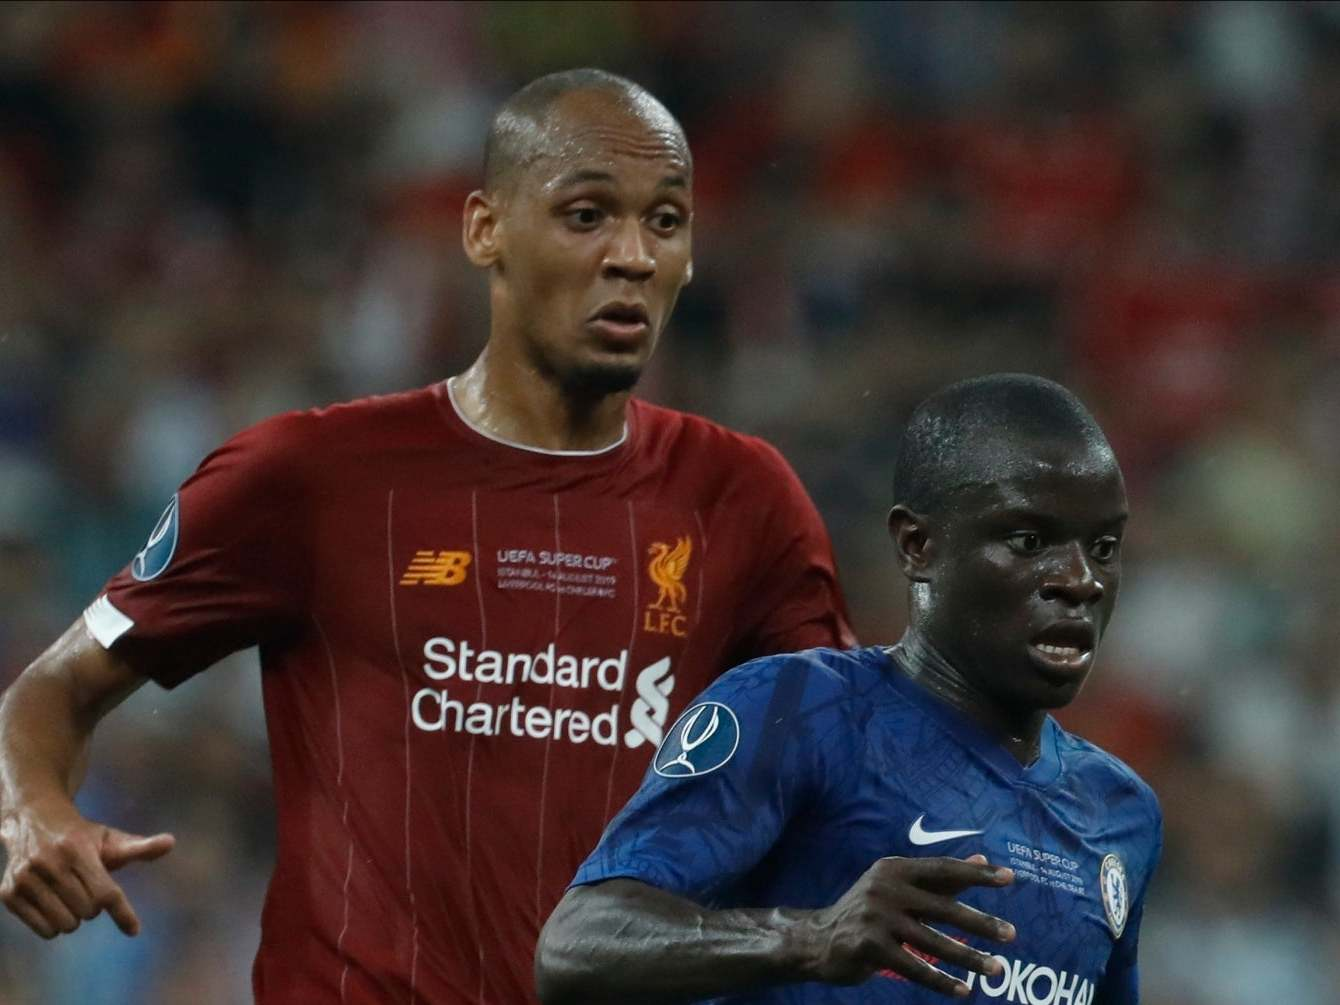 Liverpool news: Fabinho criticised by Graeme Souness for appearing to wear 'lead boots' in Uefa Super Cup